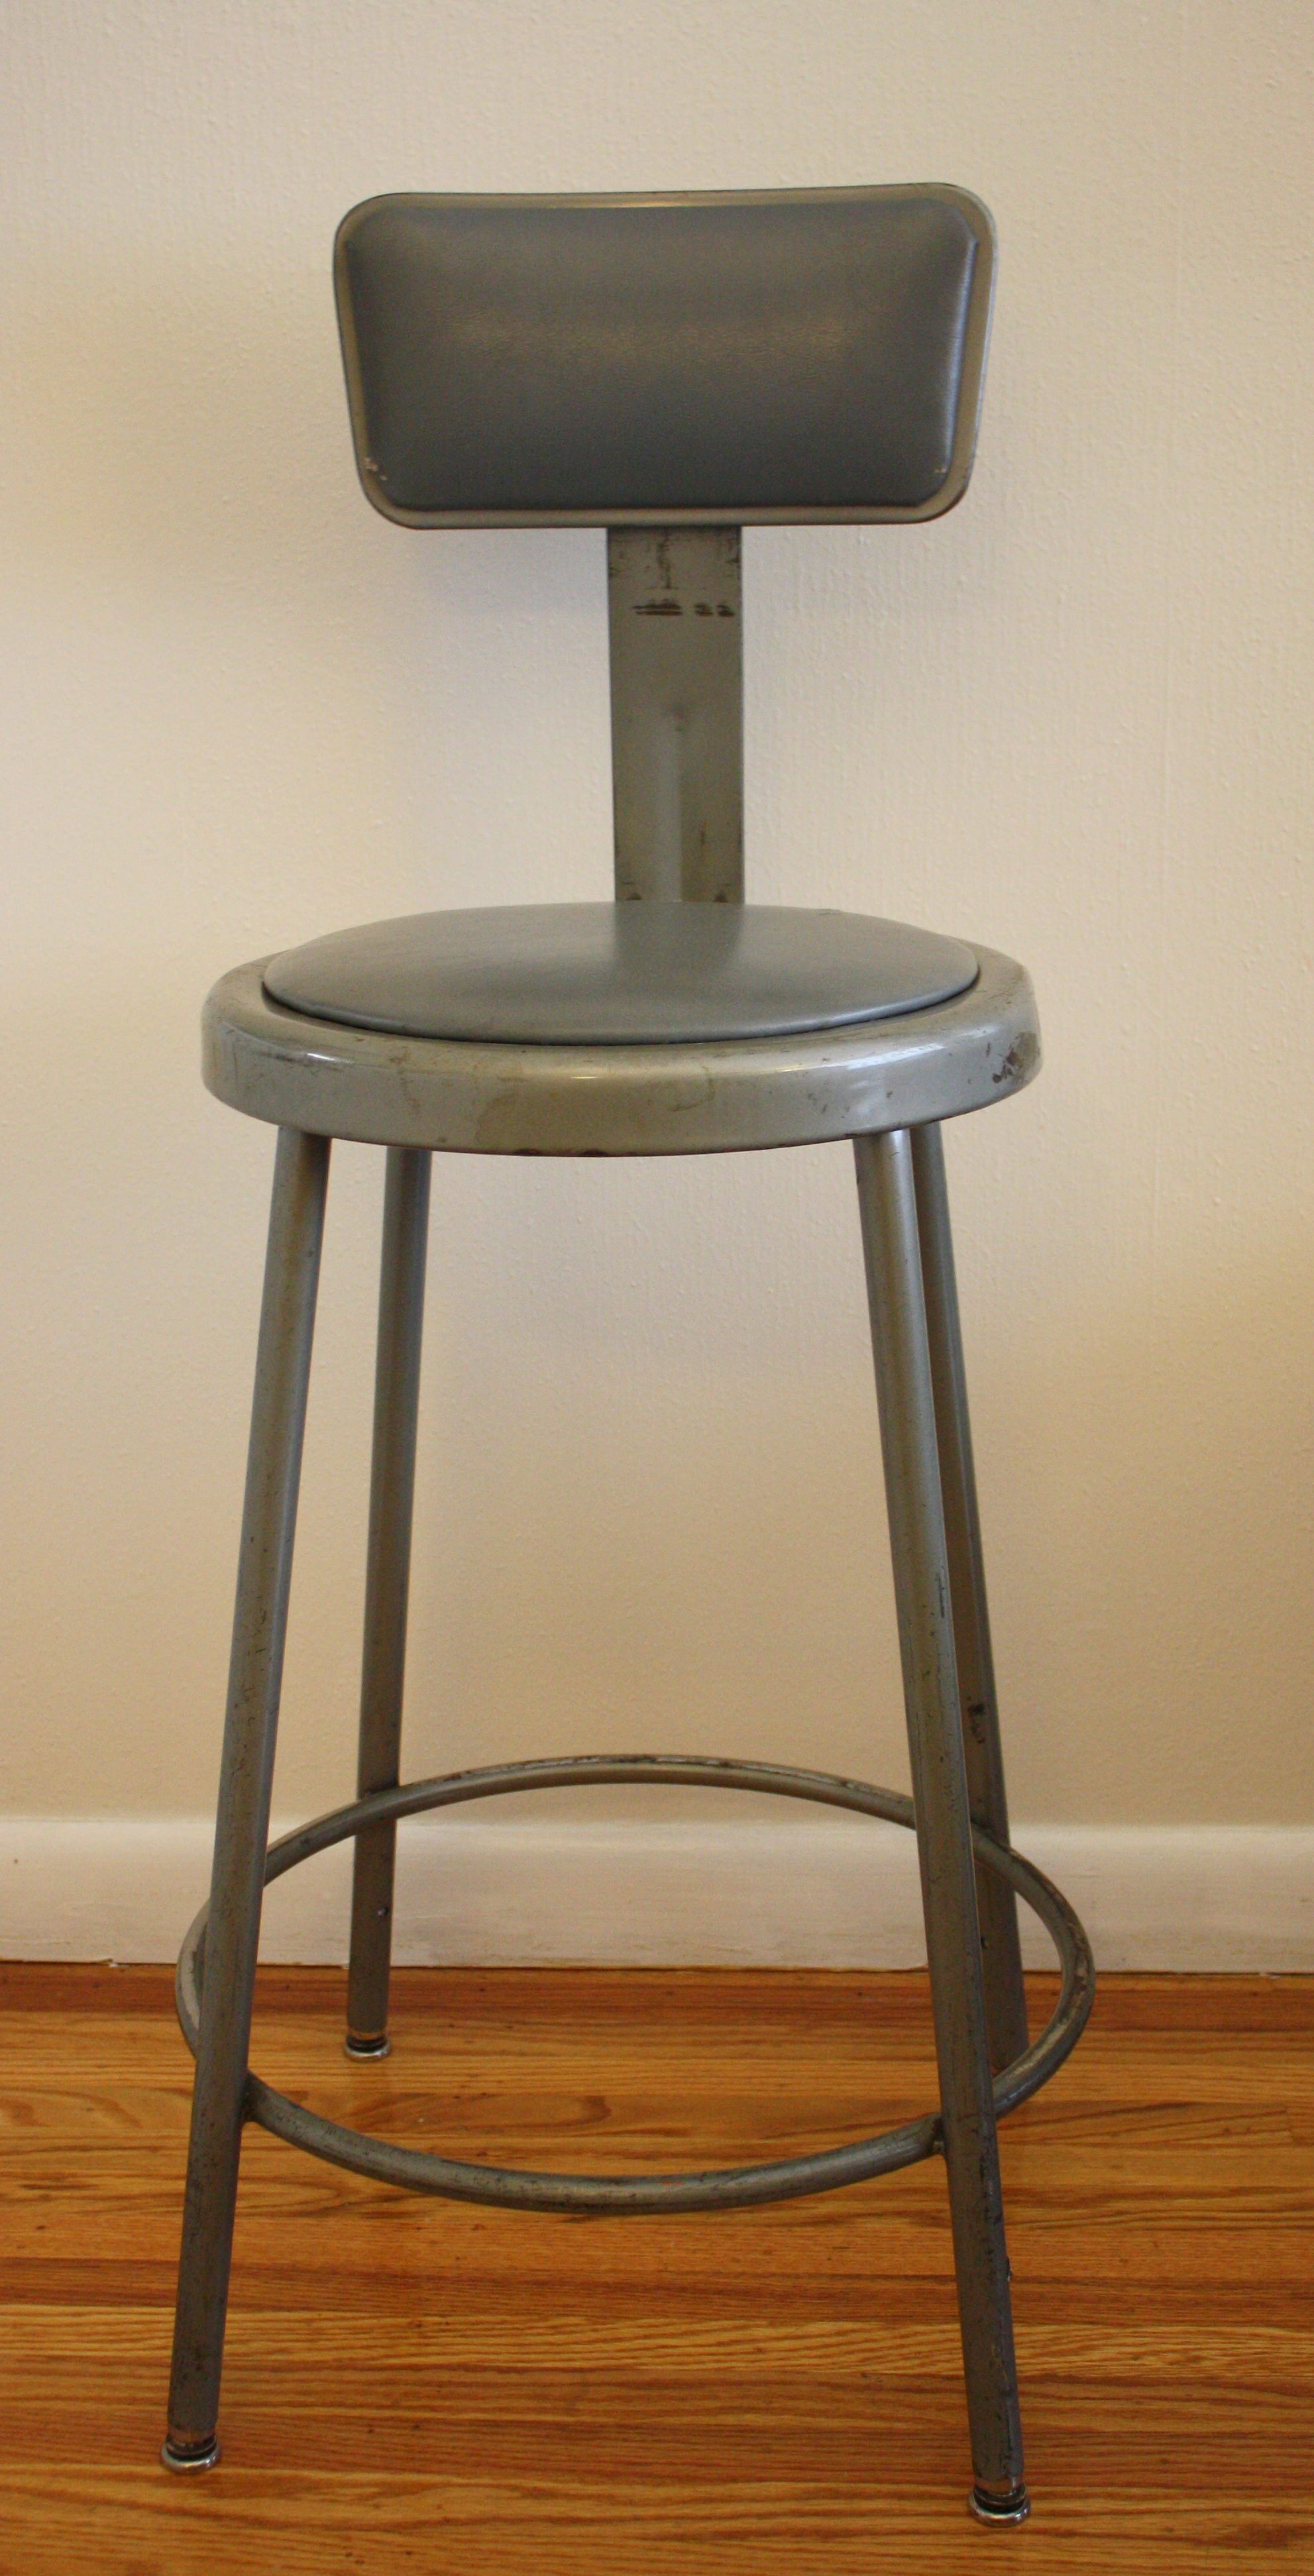 Antique Industrial Drafting Stool Picked Vintage